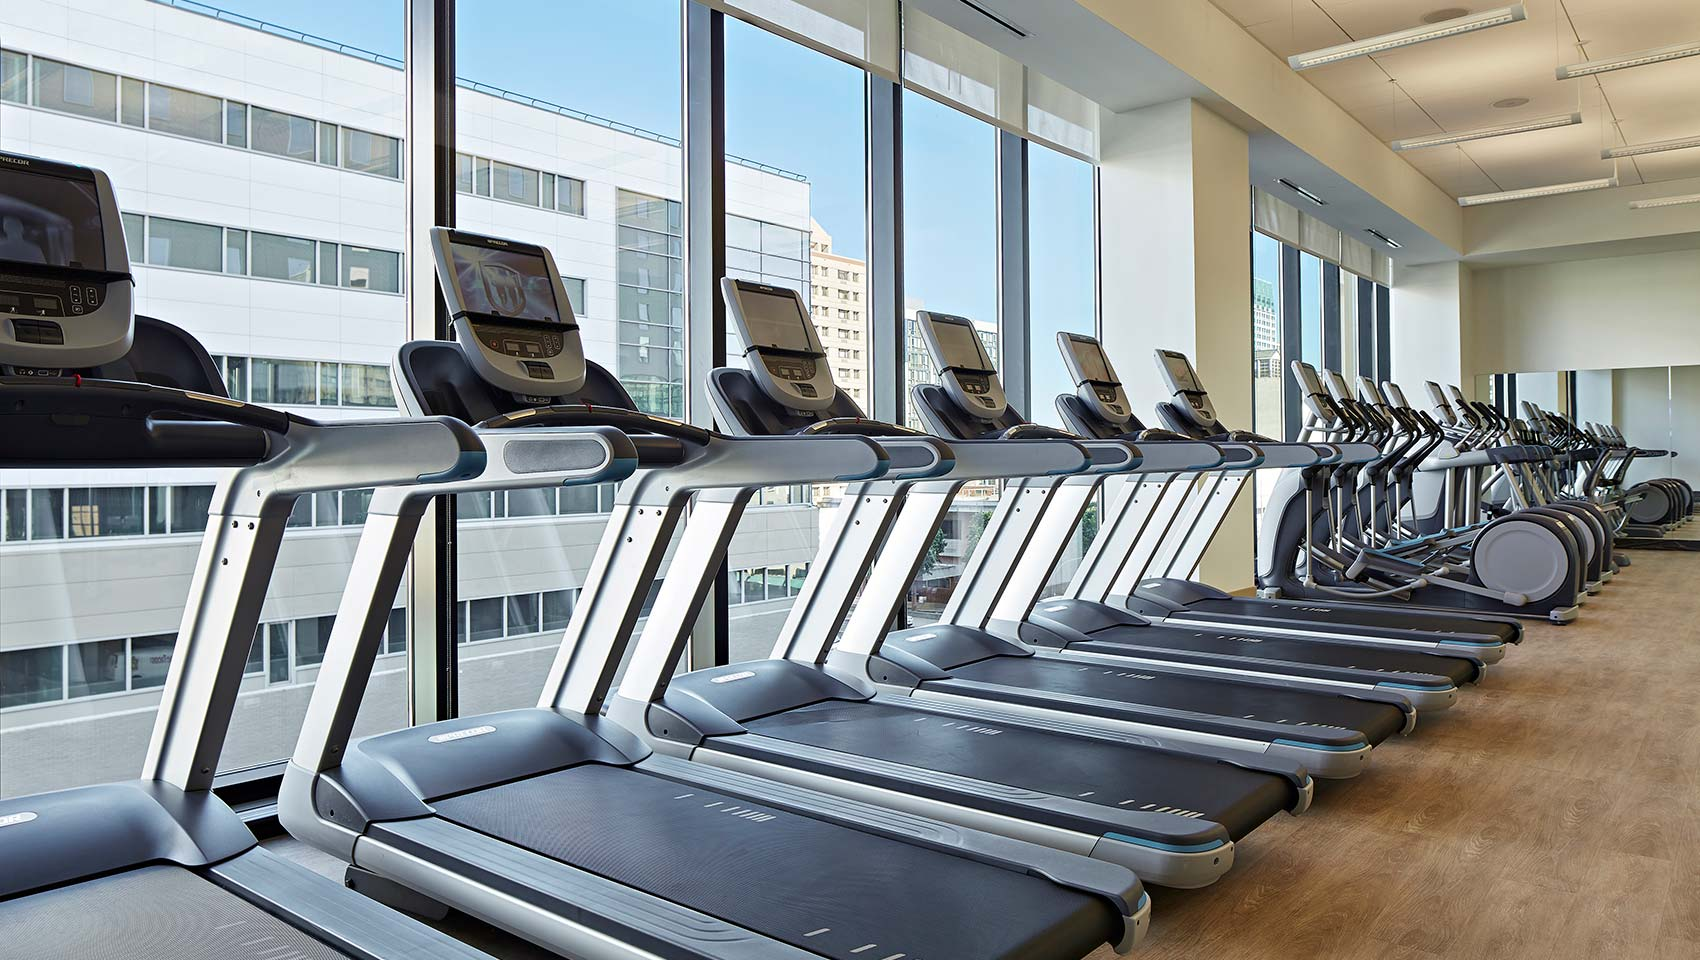 kimpton sawyer hotel sacramento fitness center